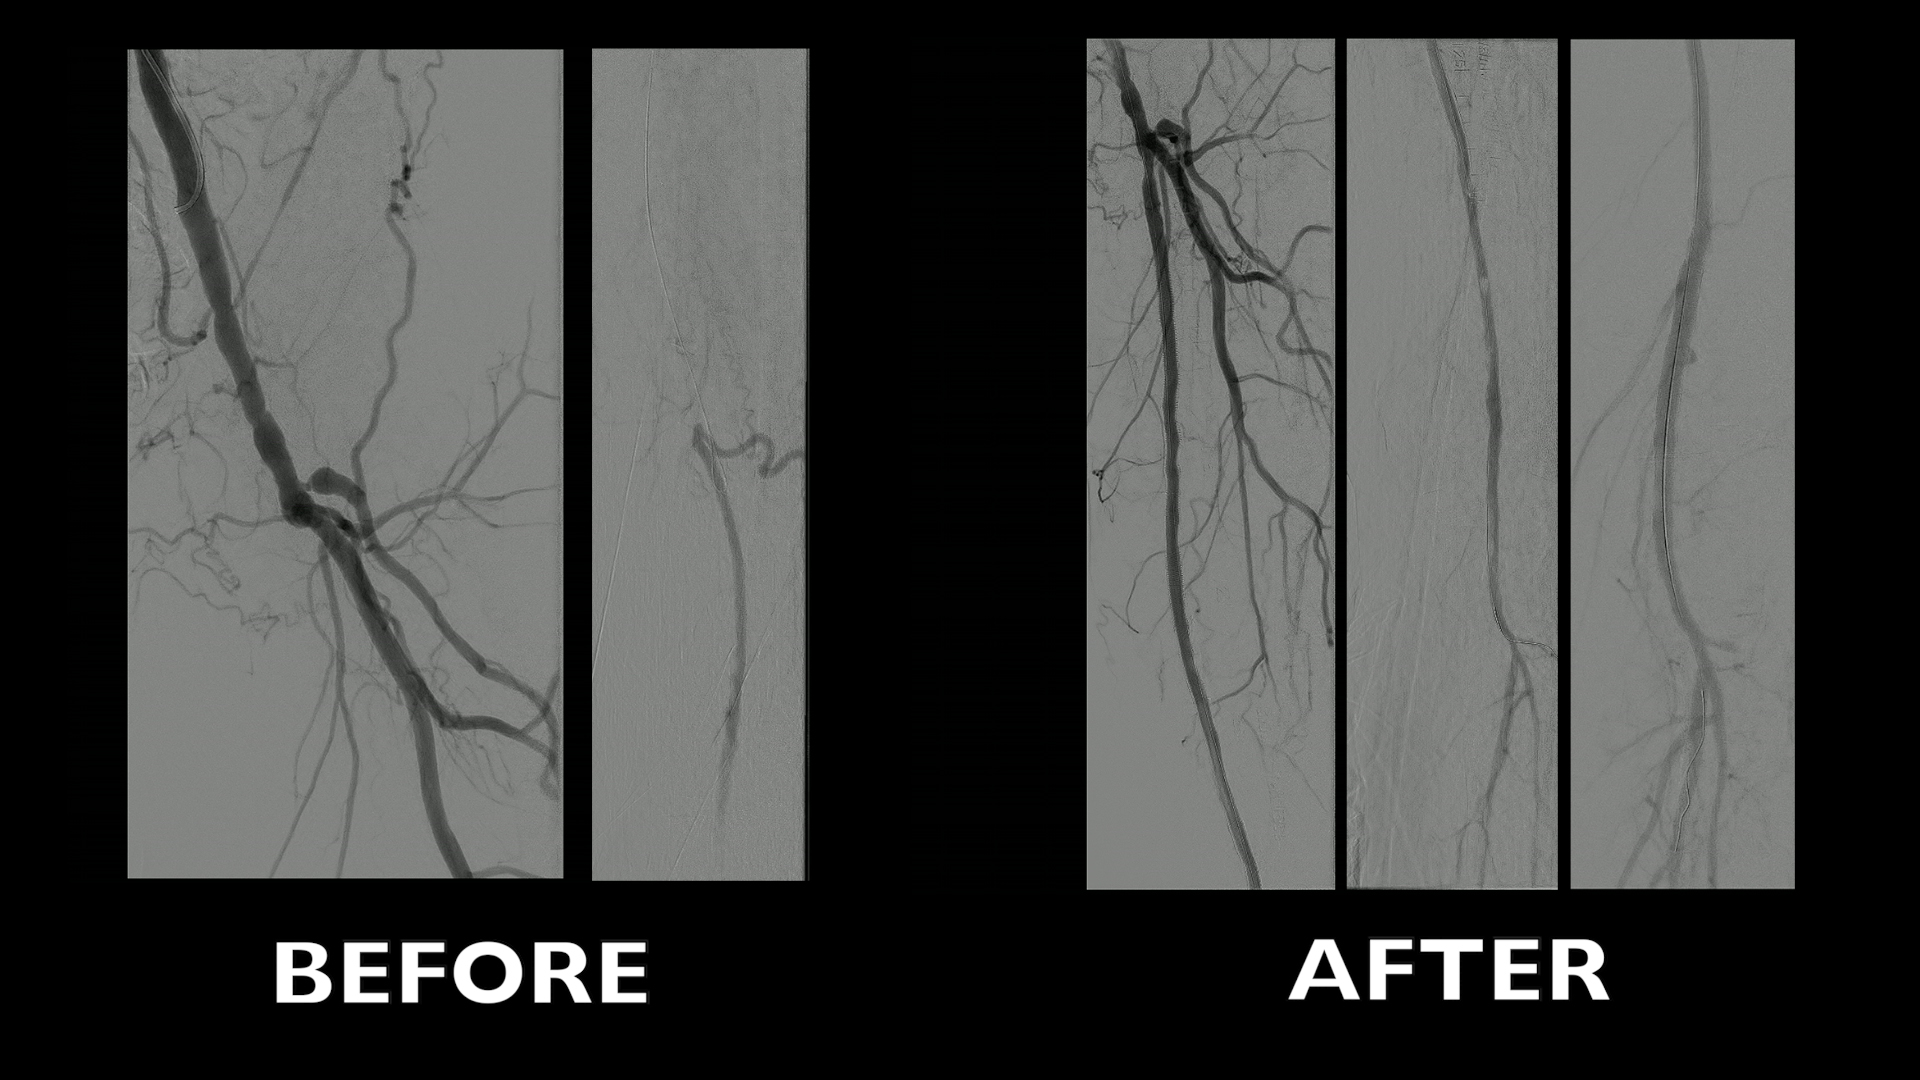 video vascular mimetic technology supera in challenging case 1 endovascular approach to tasc ii d lesions involving the popliteal artery challenging but worthwhile 20 min